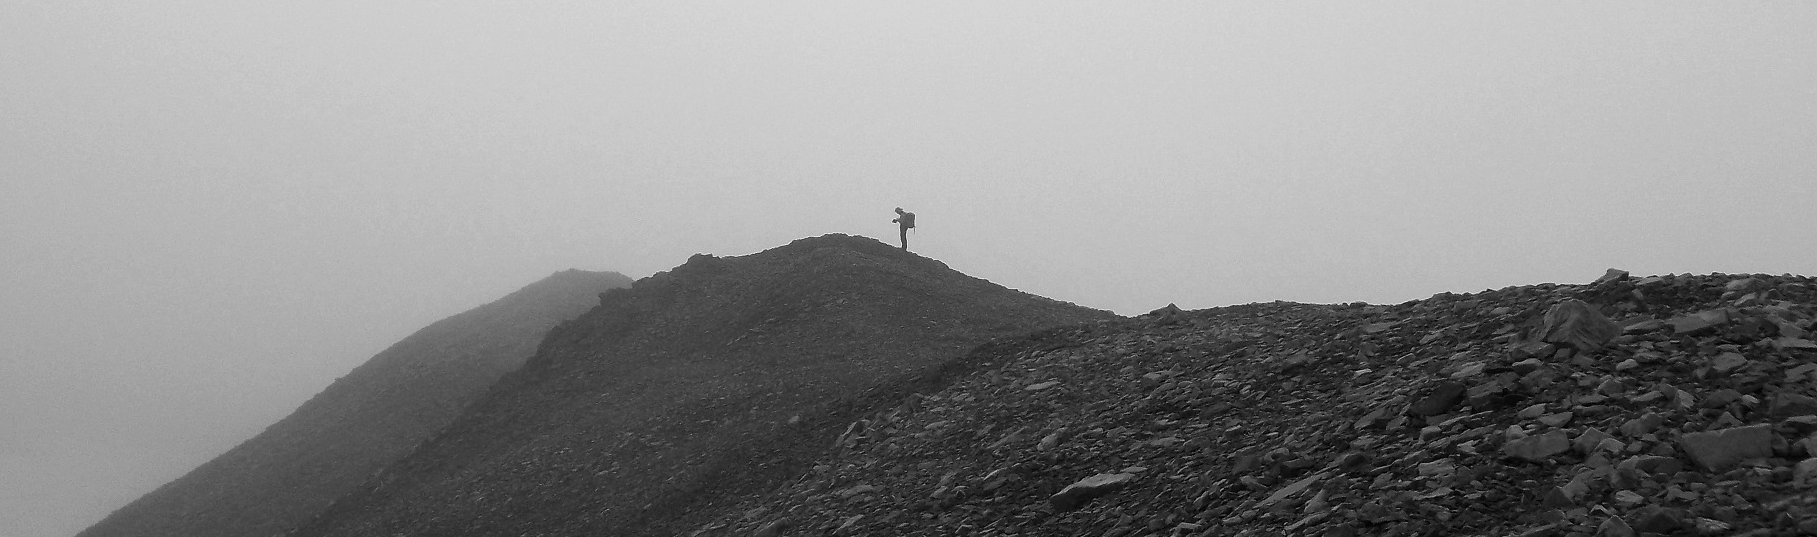 Lauridsen_Fieldwork in the fog_small.png